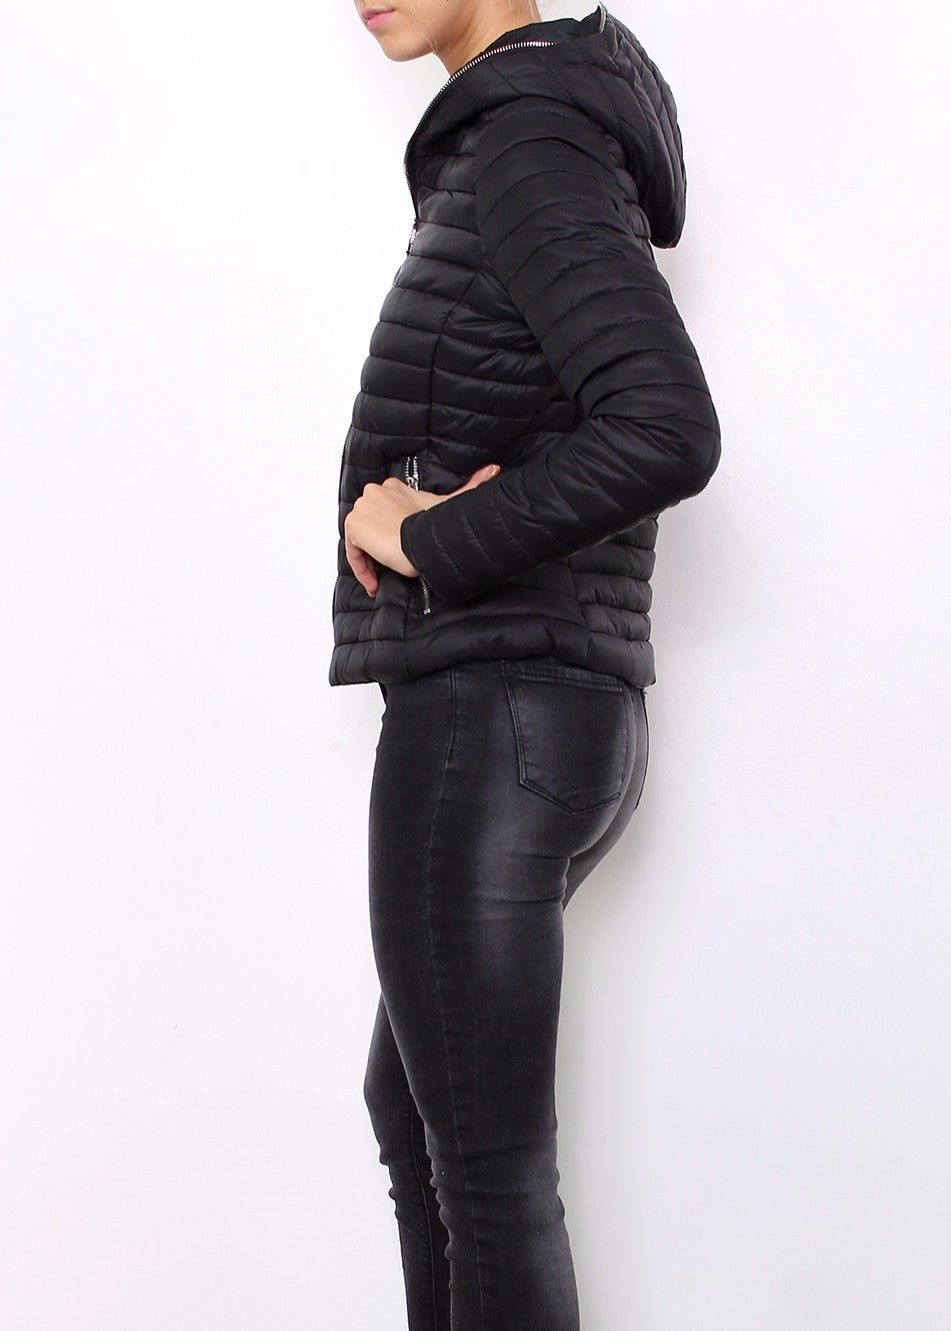 LAUREN - Quilted Jacket - SOLD OUT